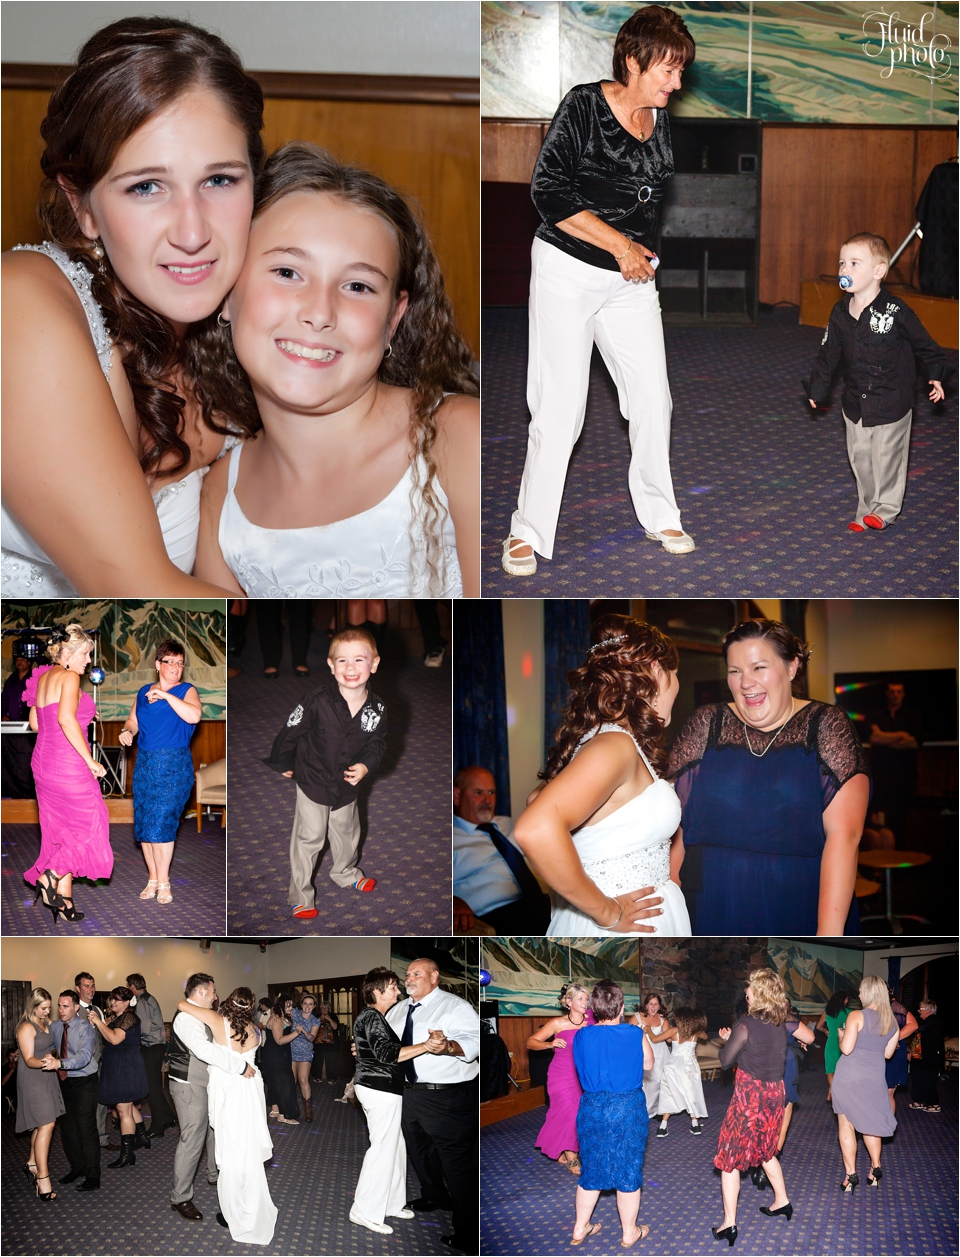 dance-zone-dj-wedding-omarama-37